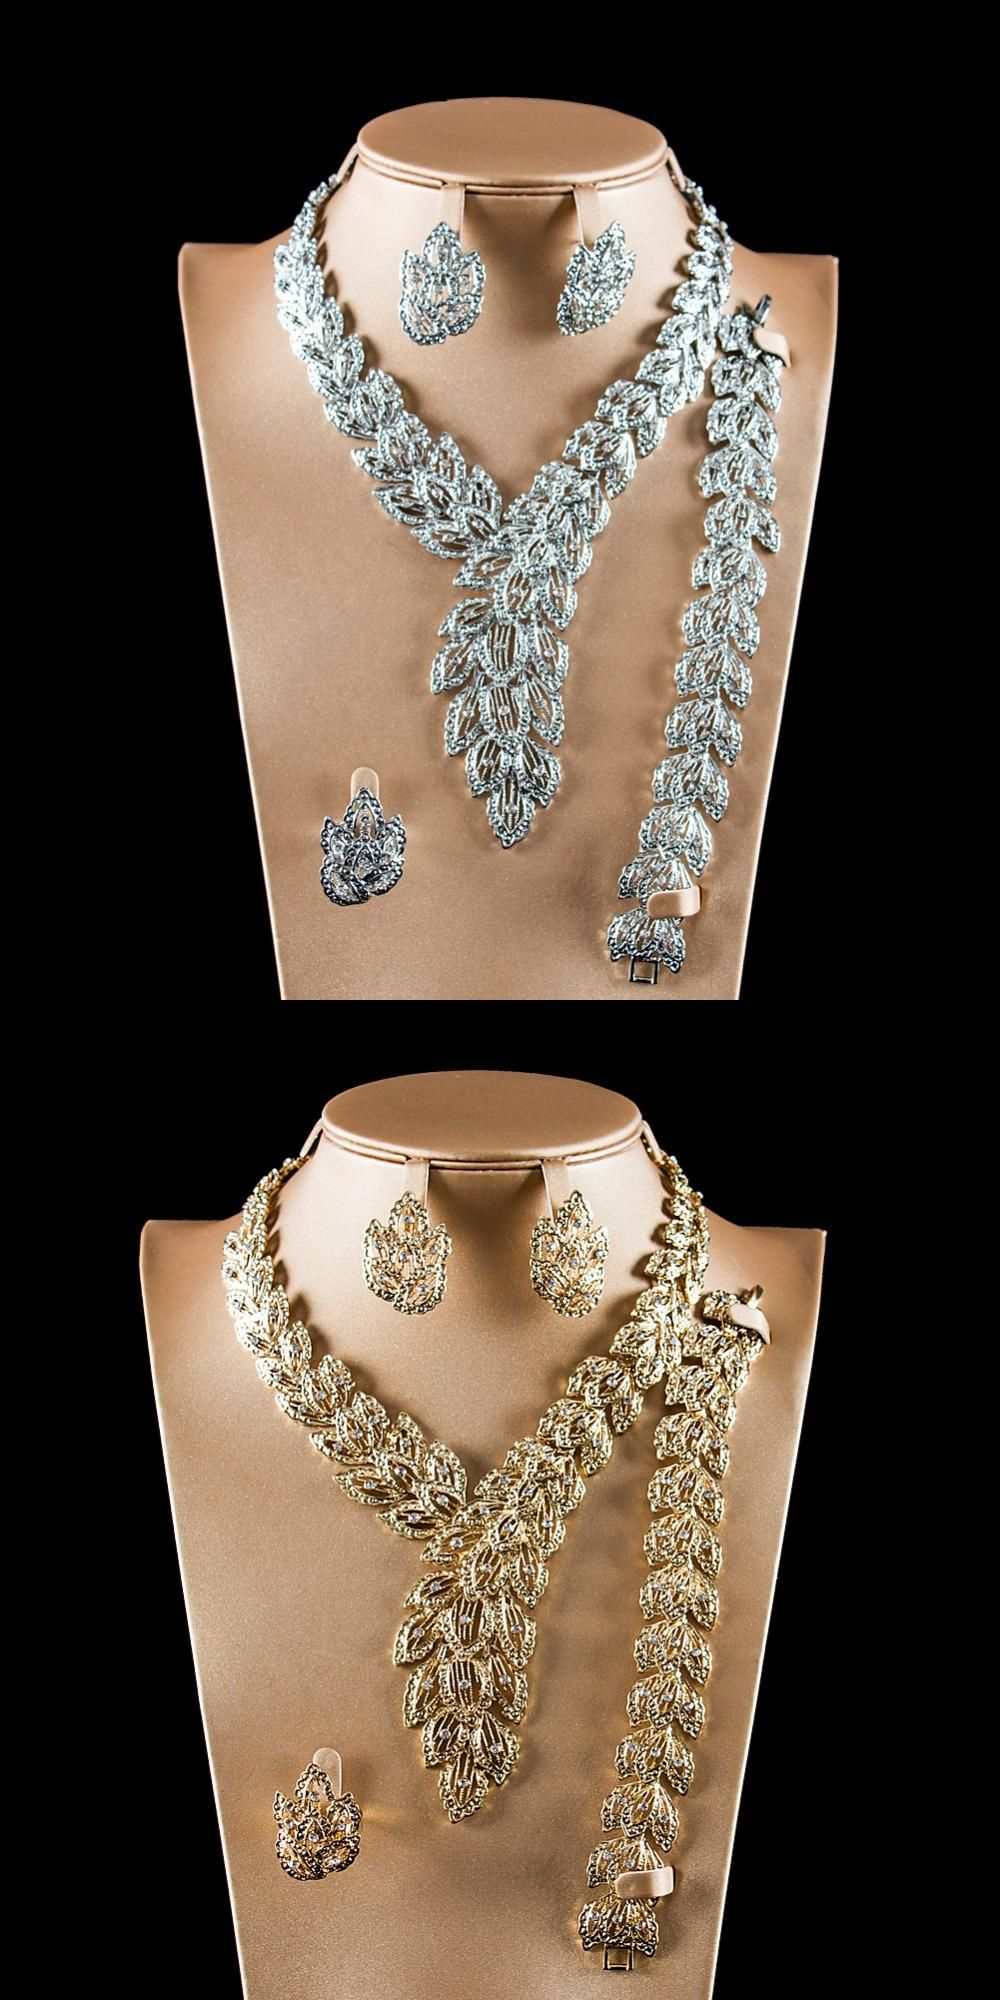 New arrival long colorfast four piece suit necklace earring ring